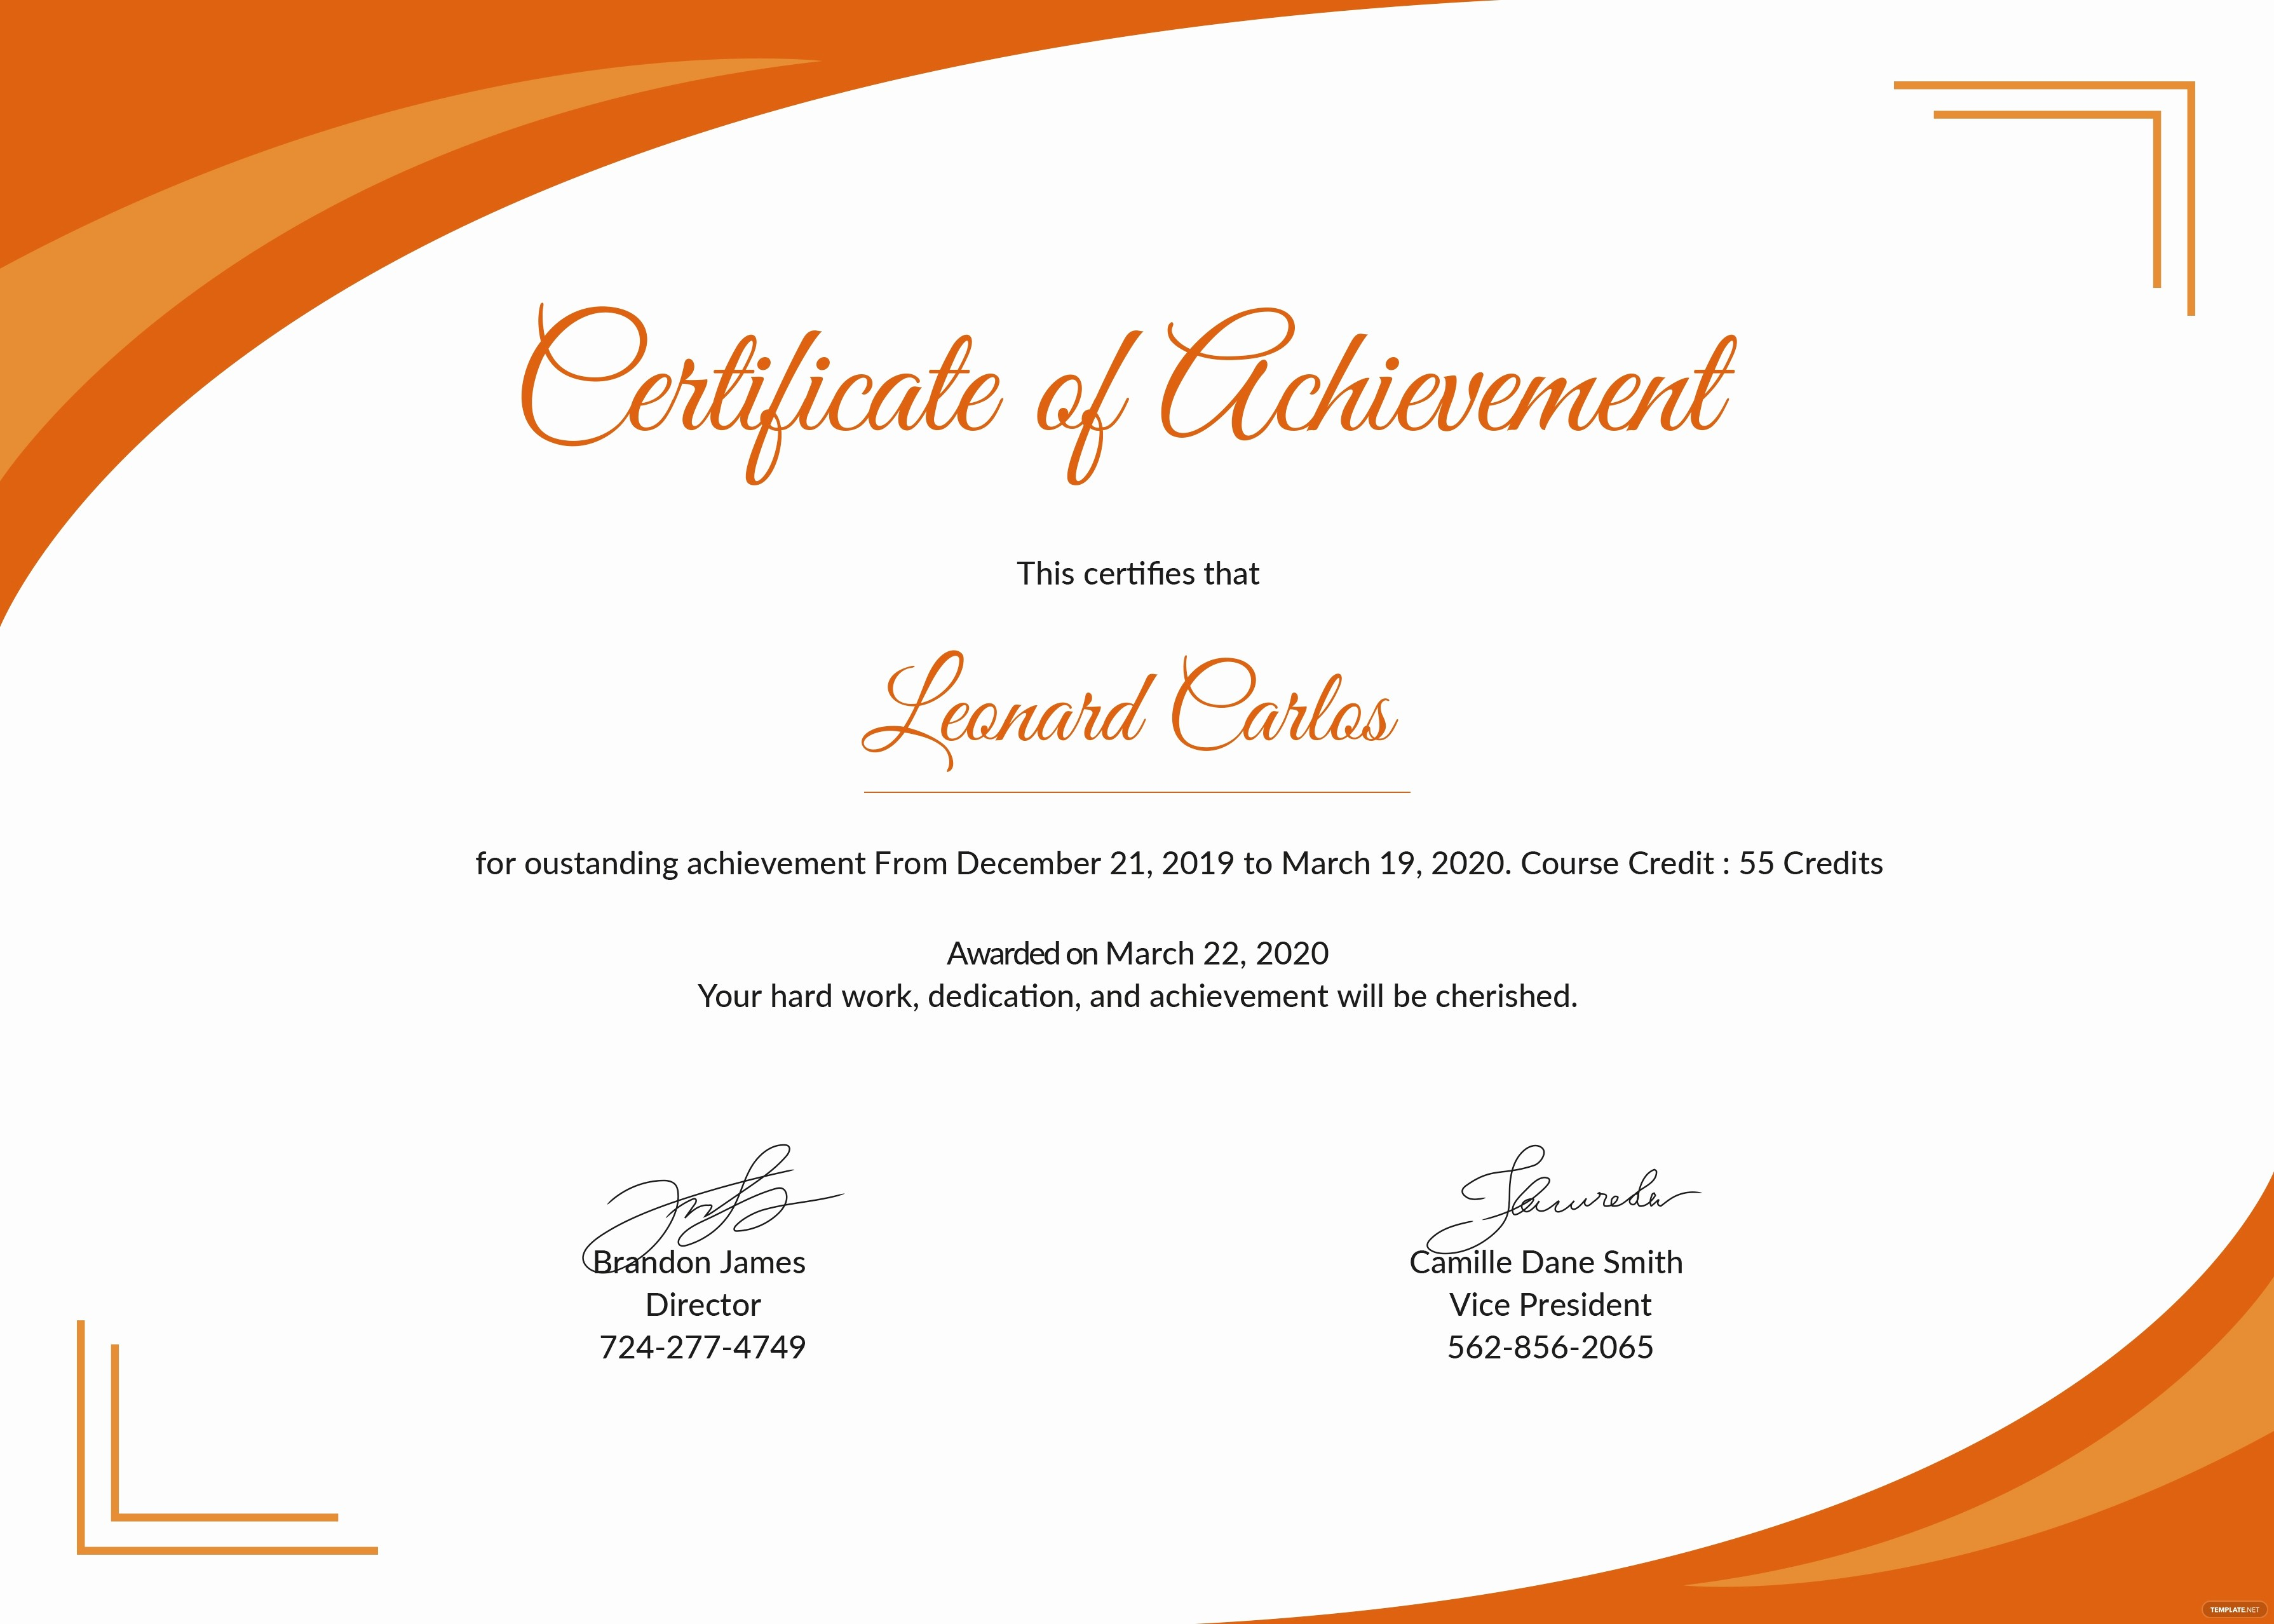 Microsoft Word Certificate Templates Free Beautiful Free Certificate Of Achievement Template In Psd Ms Word